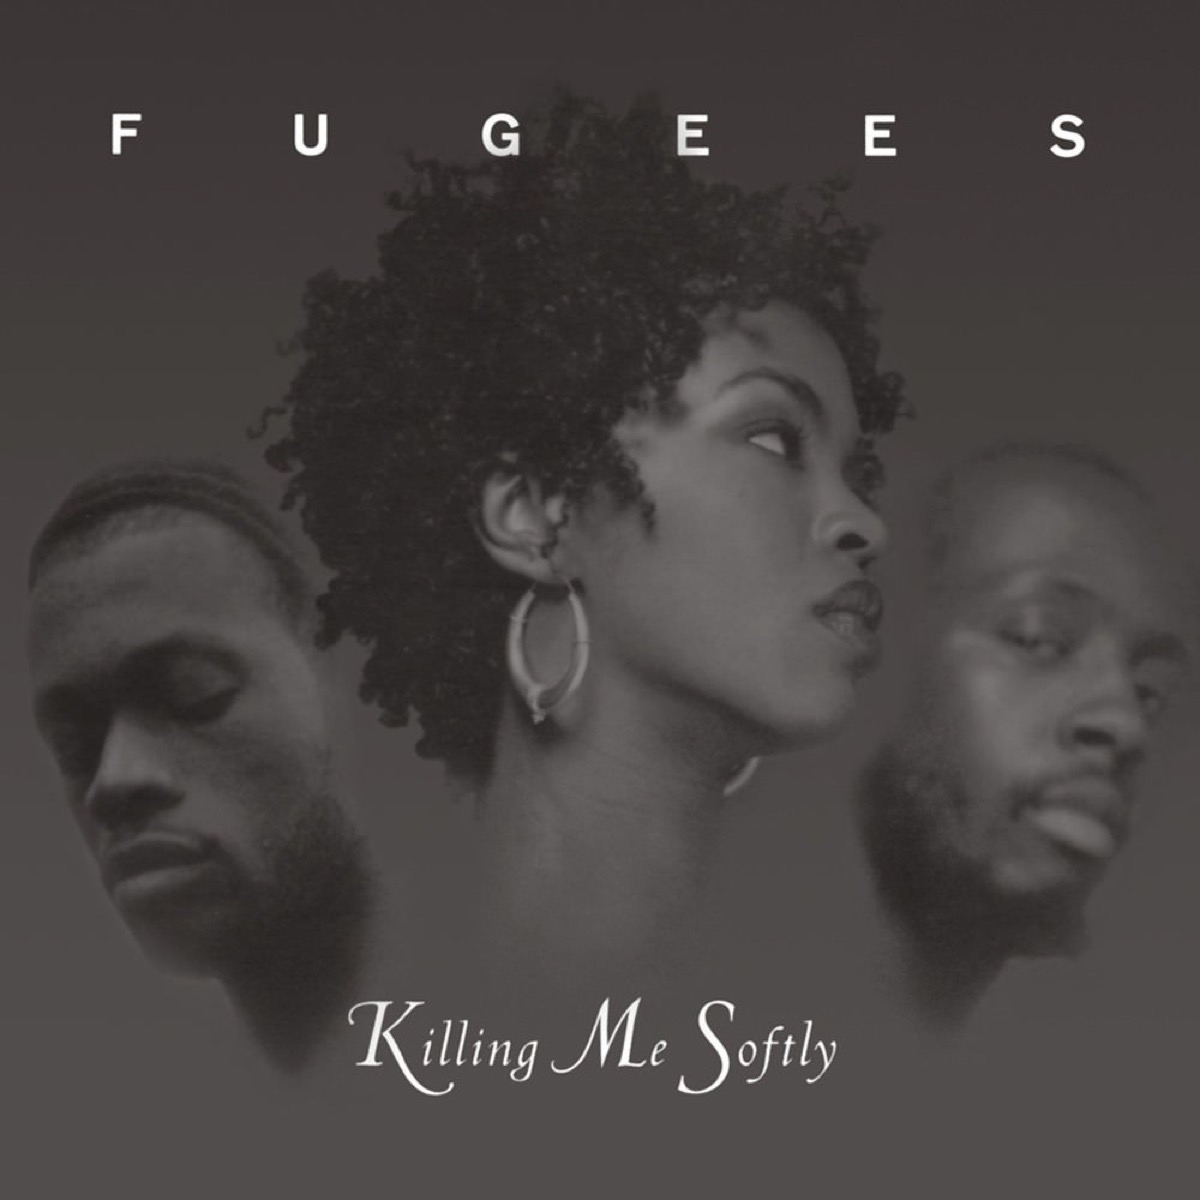 """Fugees """"Killing Me Softly"""" Cover"""